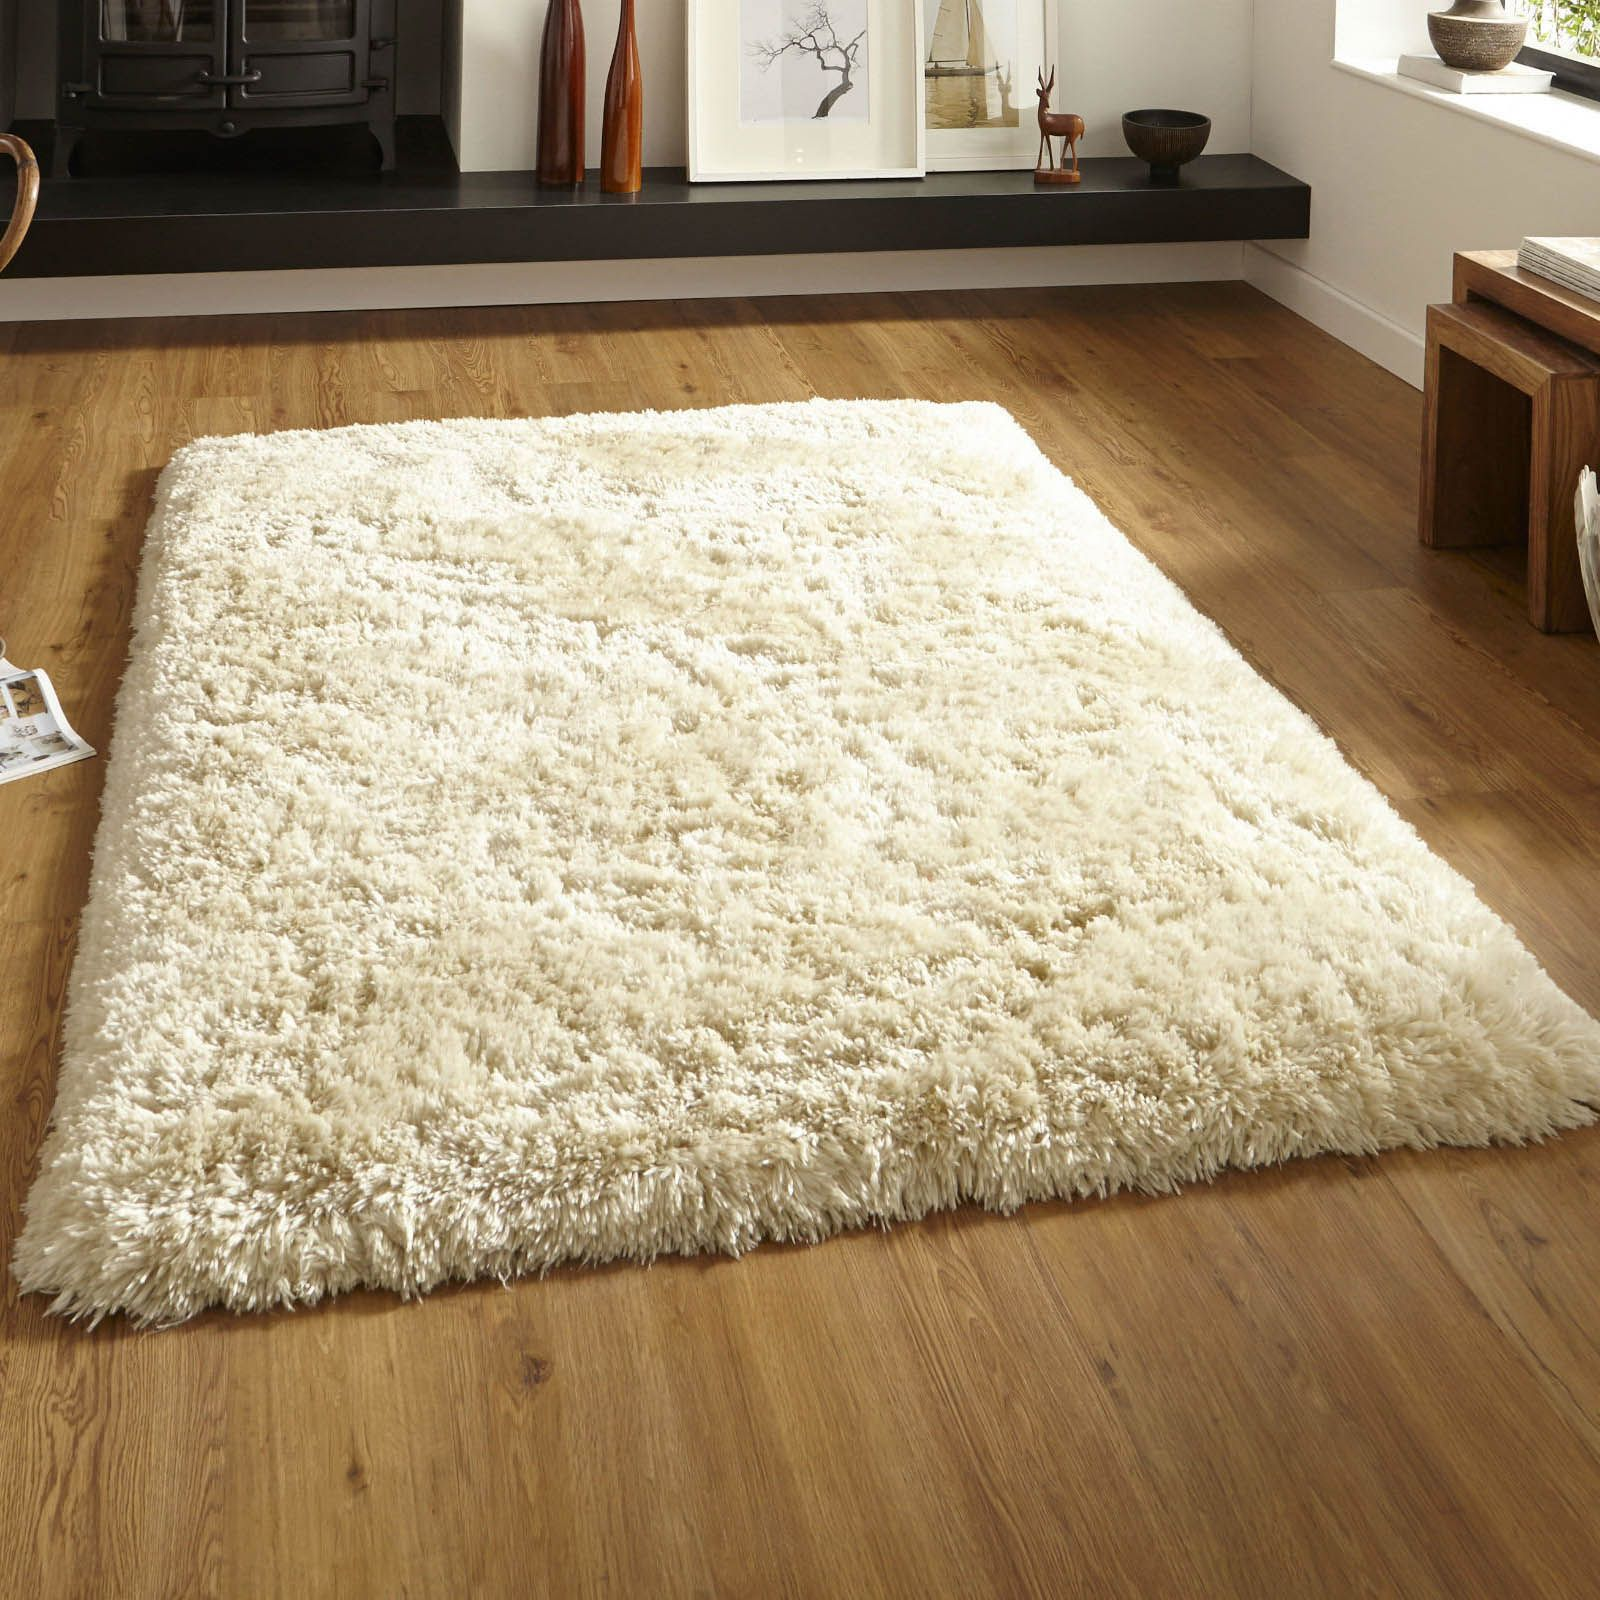 Polar Pl95 Gy Rugs In Cream Decor Pinterest Rug